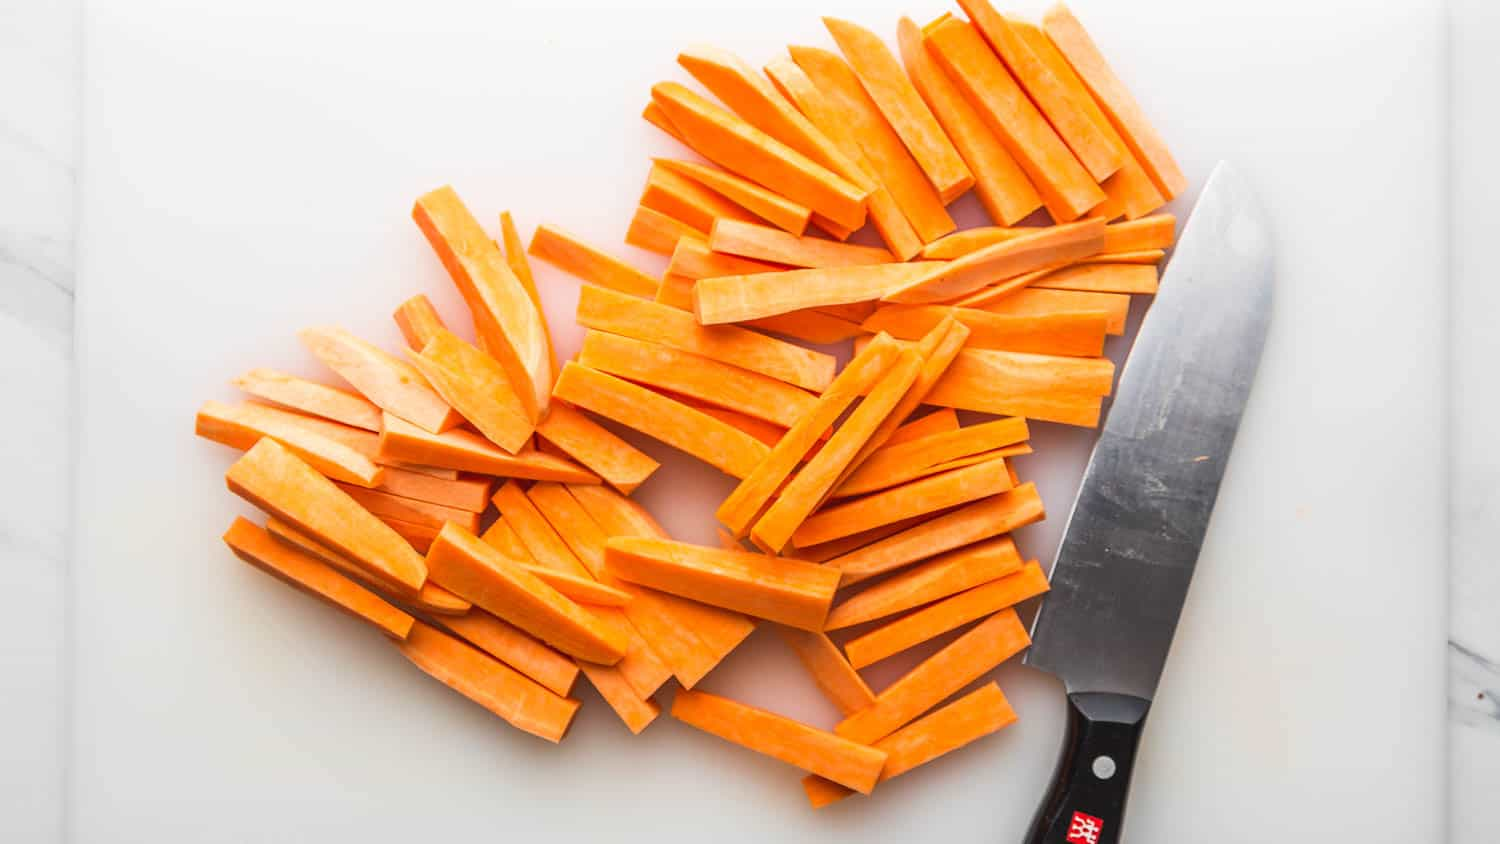 Sweet potato cut into sticks, and a Zwilling knife on the side